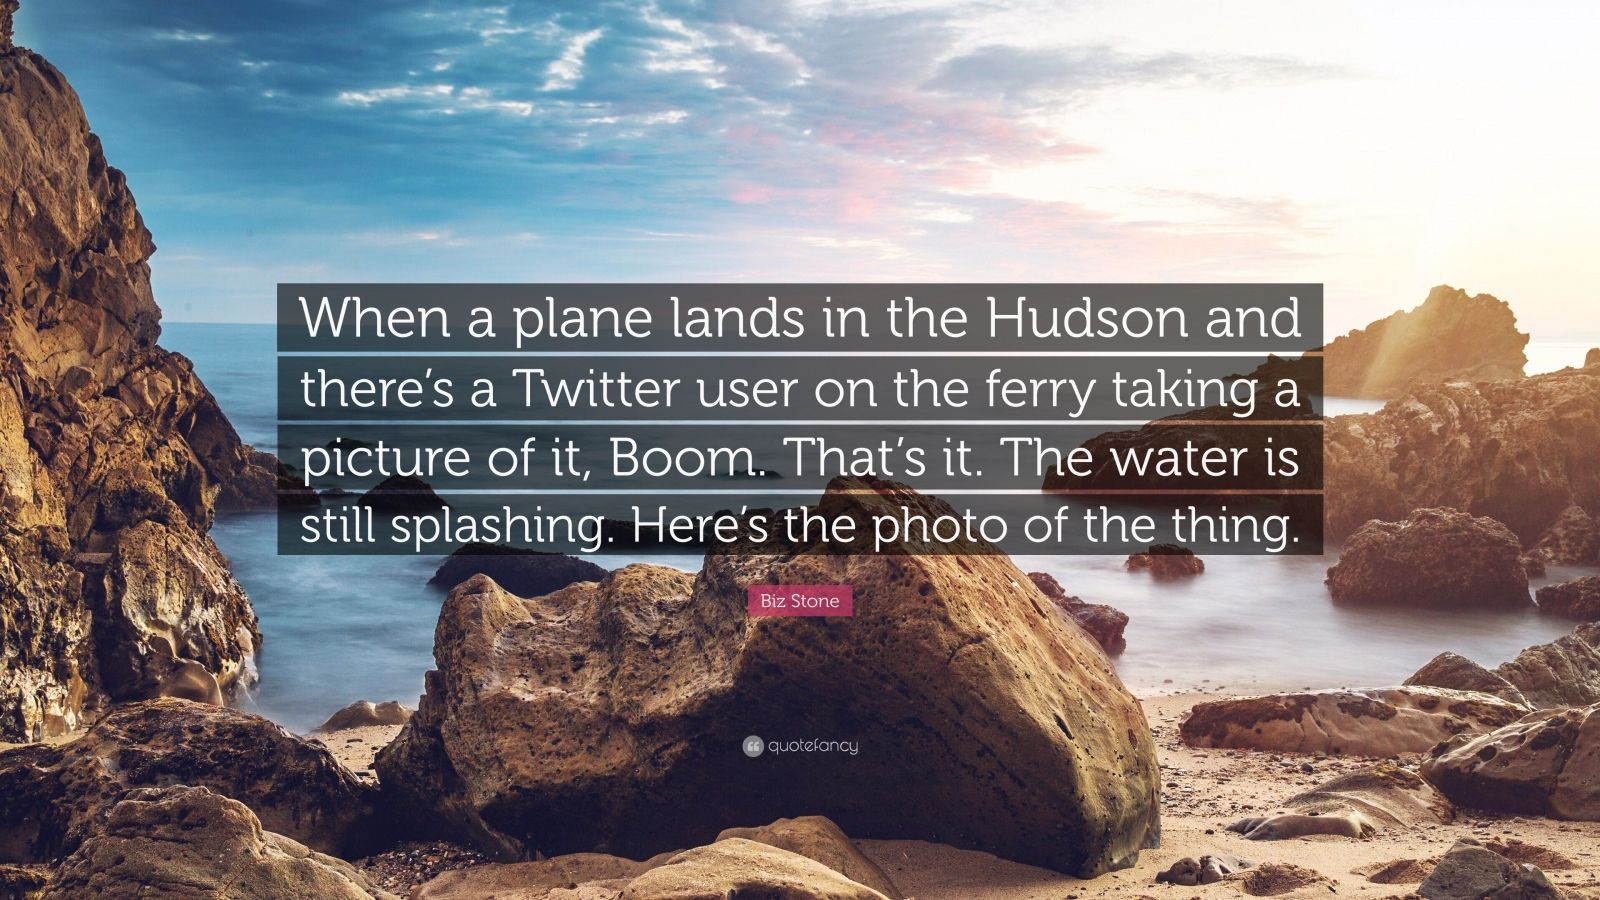 """Biz Stone Quote: """"When a plane lands in the Hudson and there's a Twitter user on the ferry taking a picture of it, Boom. That's it. The water is still splashing. Here's the photo of the thing."""""""